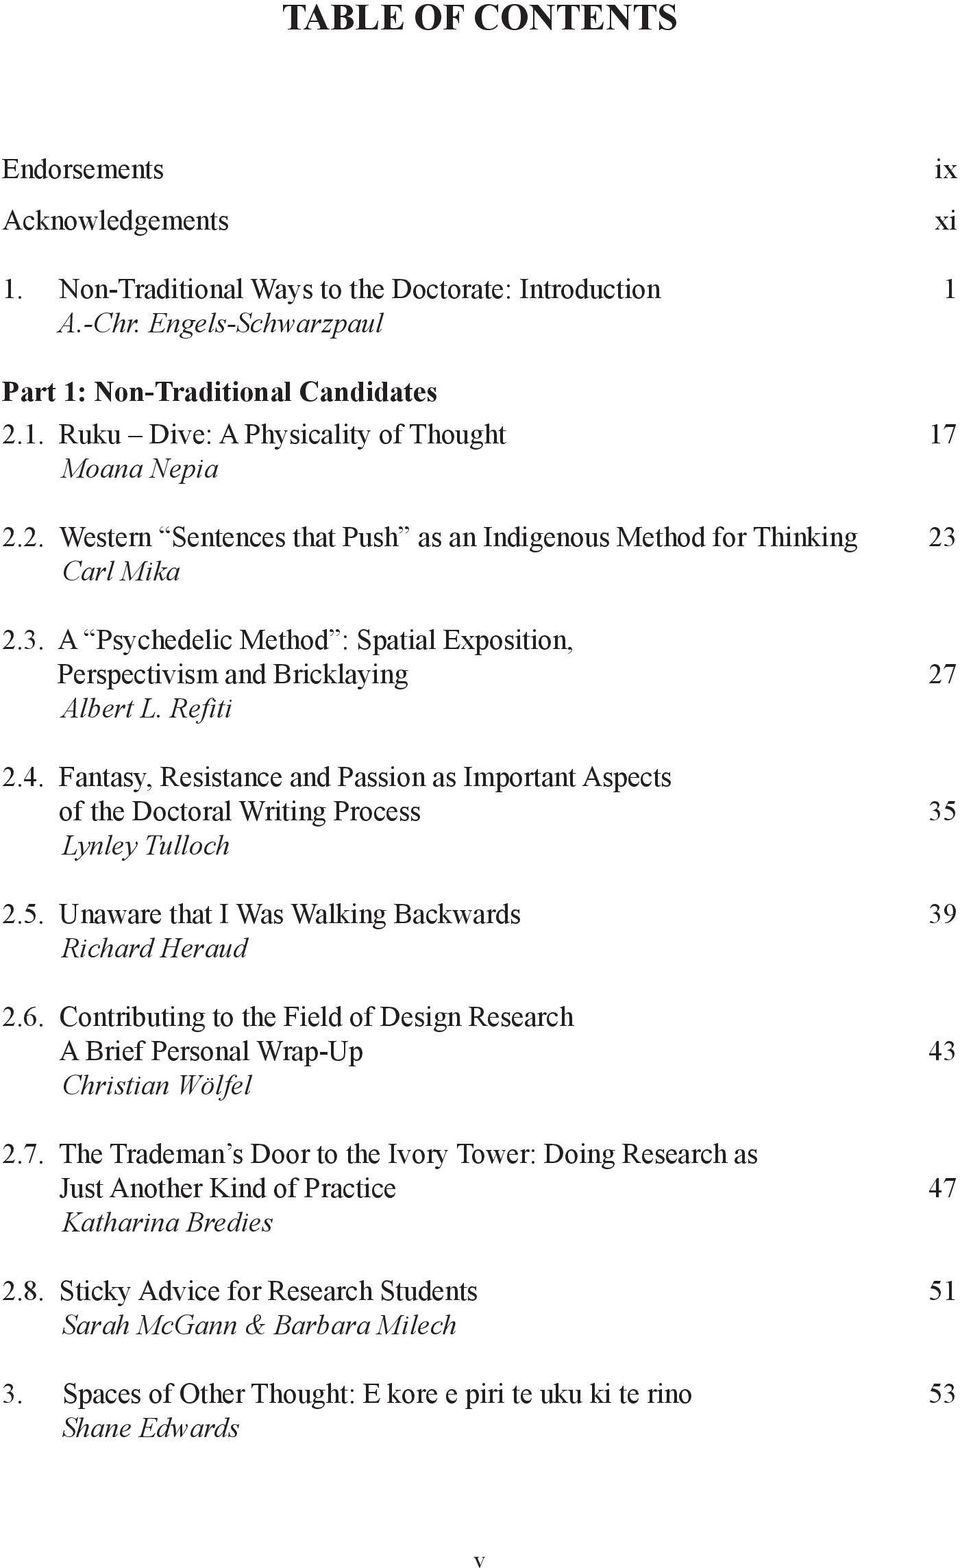 Fantasy, Resistance and Passion as Important Aspects of the Doctoral Writing Process 35 Lynley Tulloch 2.5. Unaware that I Was Walking Backwards 39 Richard Heraud 2.6.